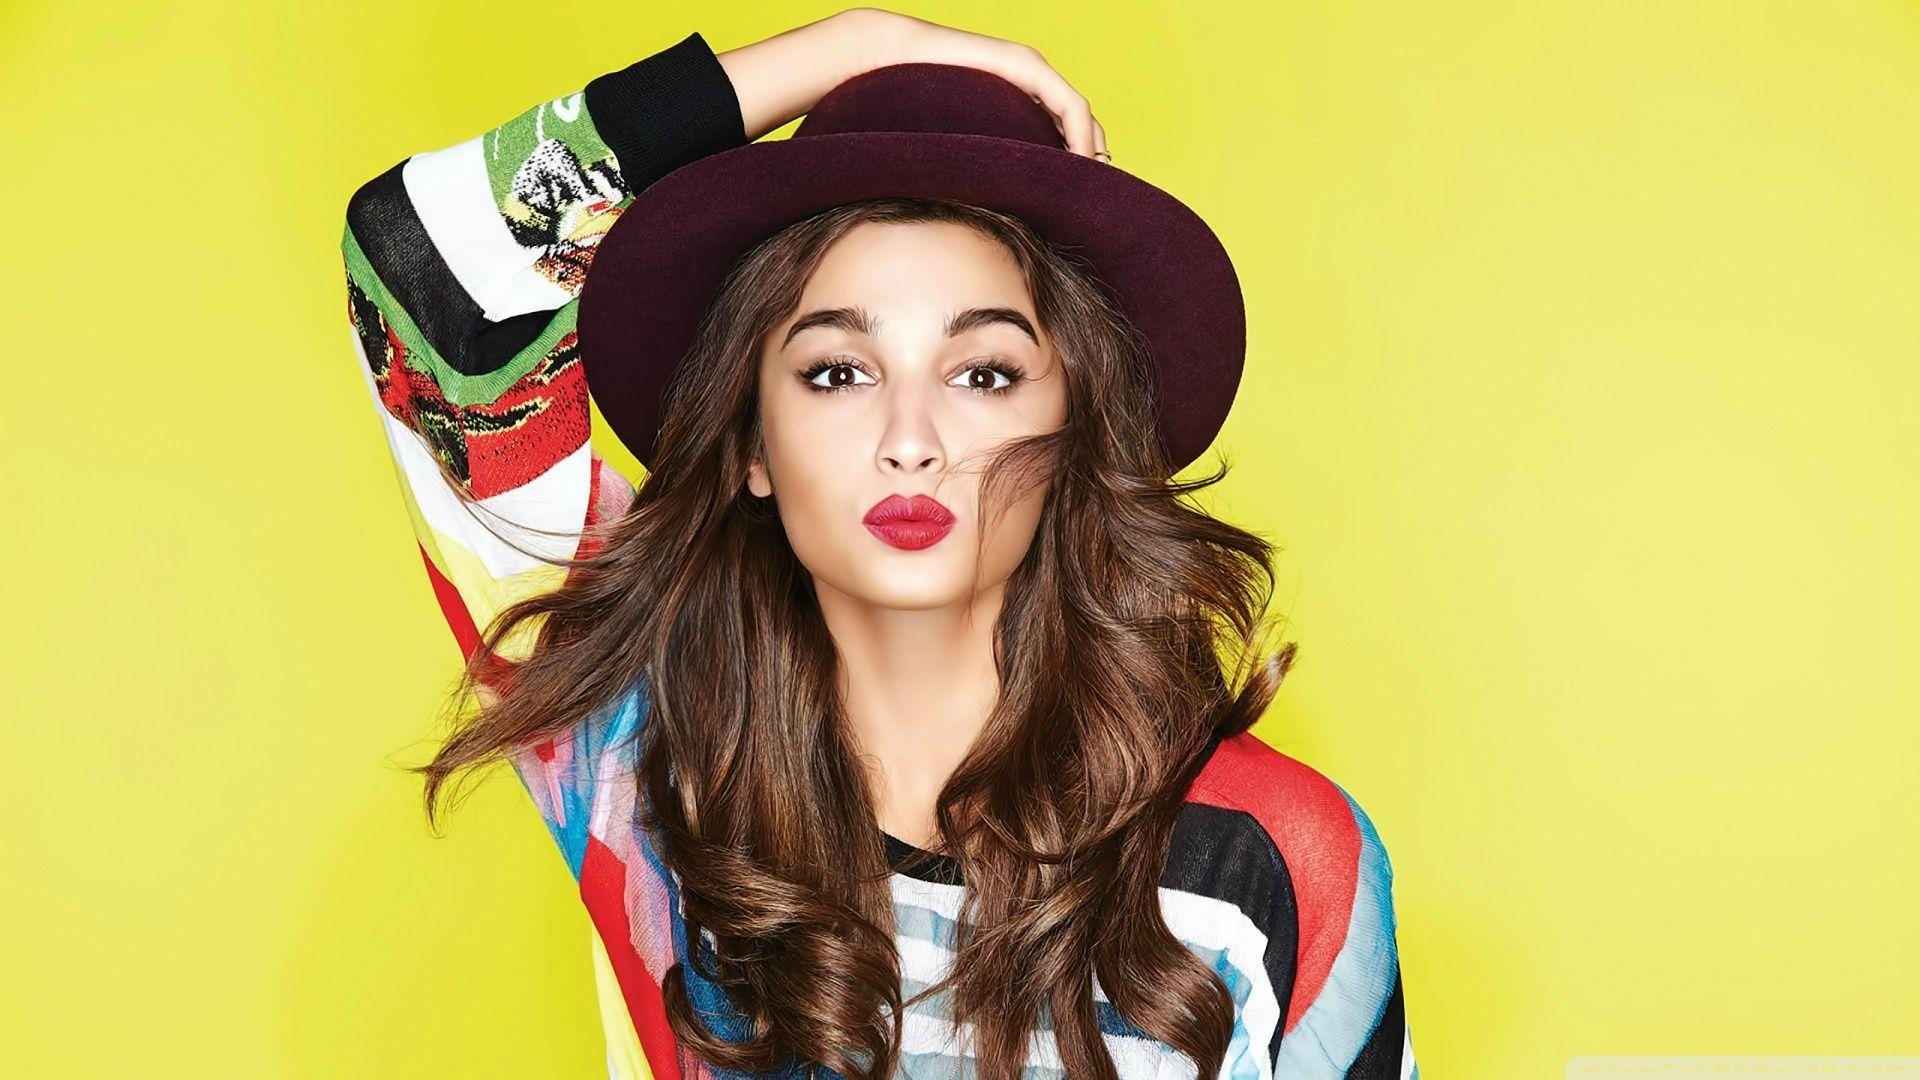 Alia Bhatt ❤ 4K HD Desktop Wallpapers for 4K Ultra HD TV • Wide